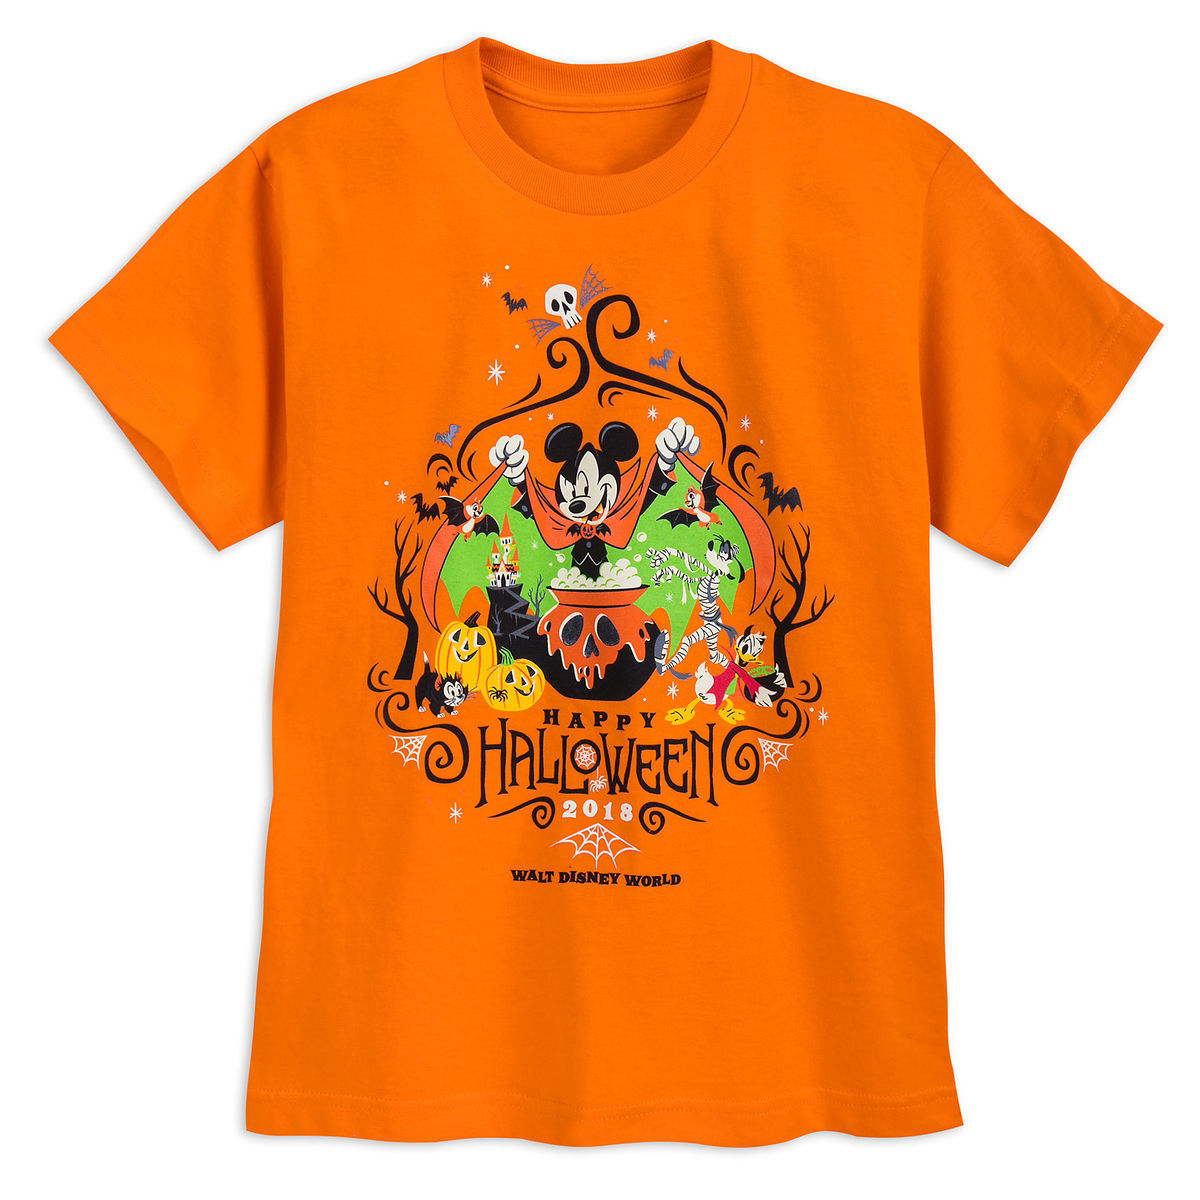 58a71493384 Product Image of Mickey Mouse and Friends Halloween T-Shirt for Kids - Walt  Disney